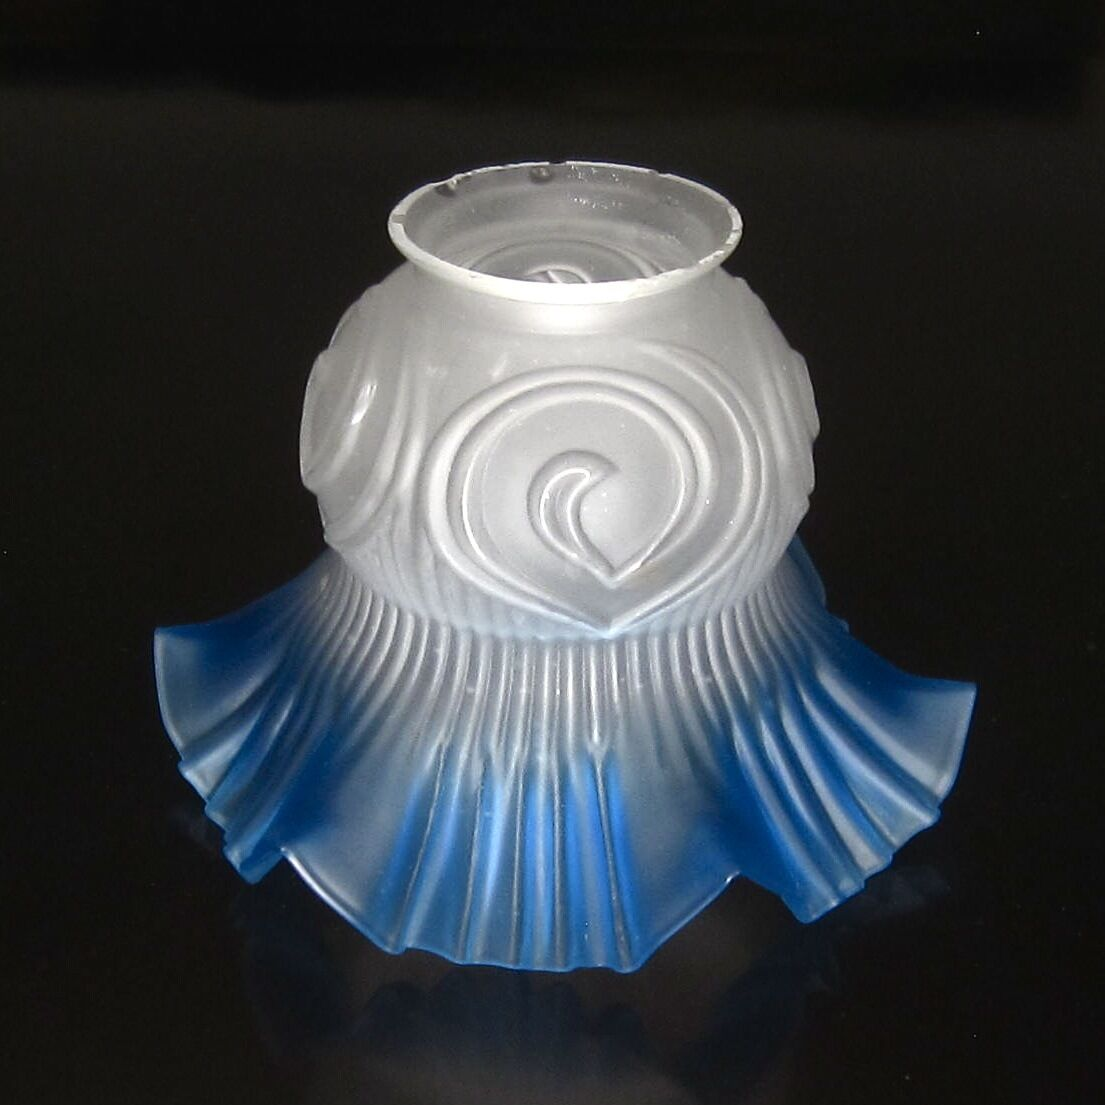 Vintage French / Czechoslovakian Art Deco Frosted Glass Lamp Ceiling Shade, Blue